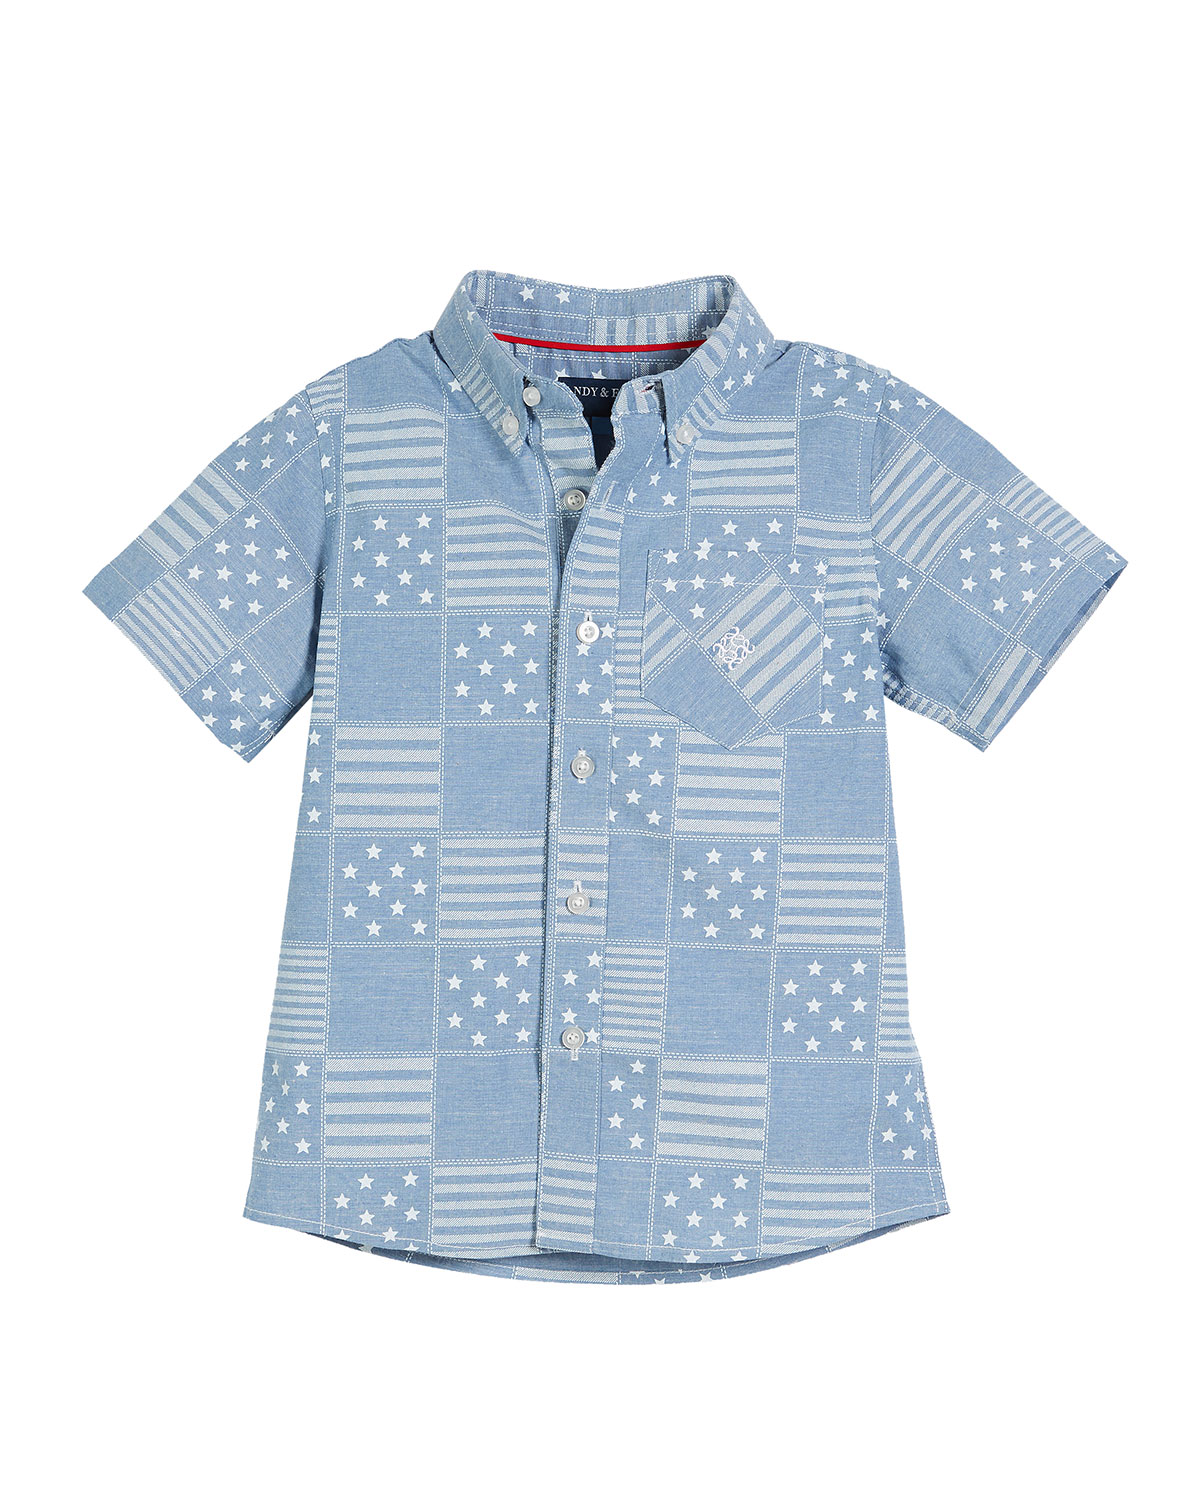 All American Patchwork Shirt, Size 2-7